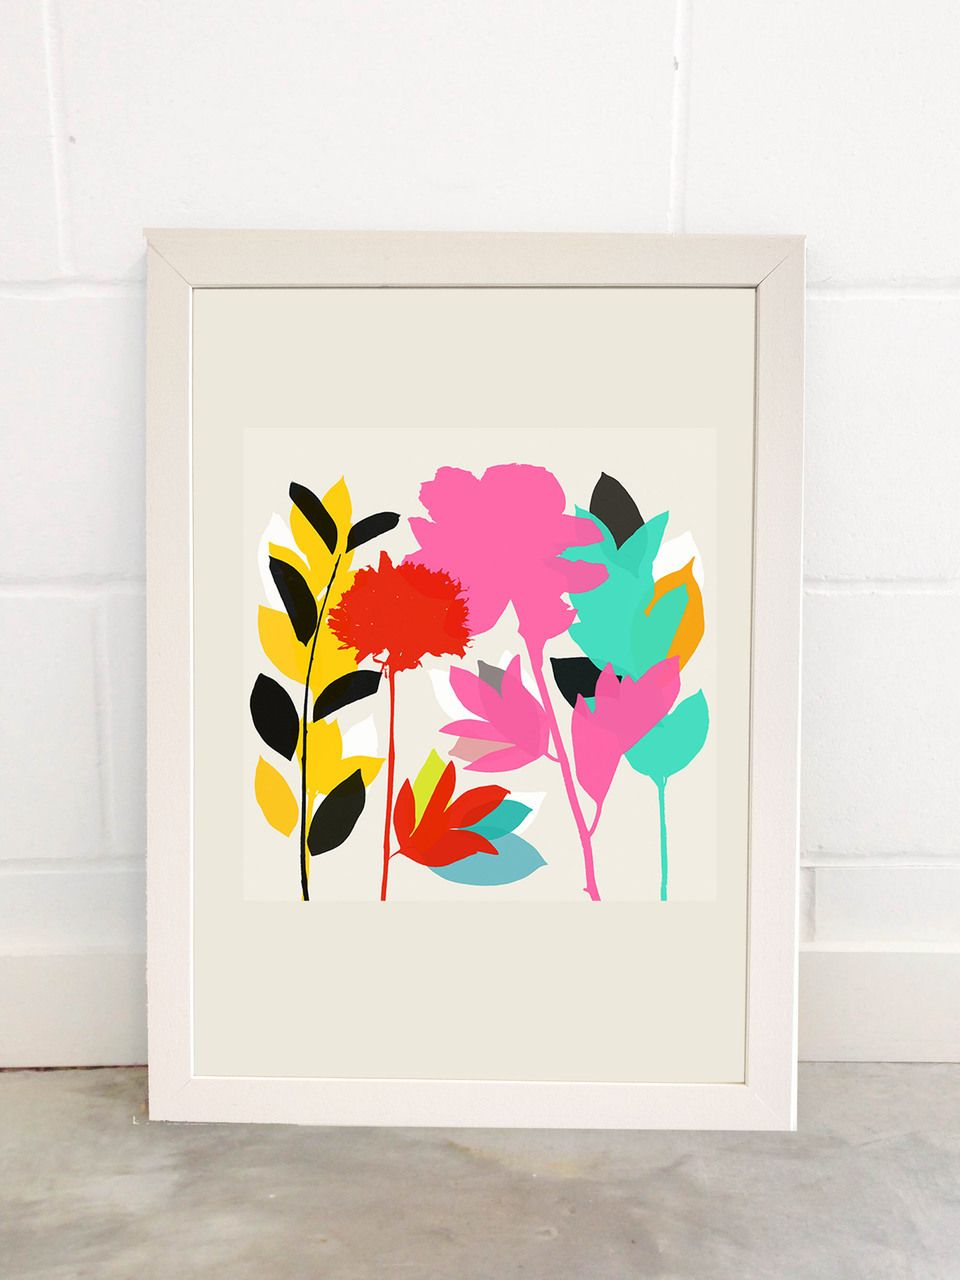 East End Prints - Peony, £19.95 (http://www.eastendprints.co.uk/products/peony.html)